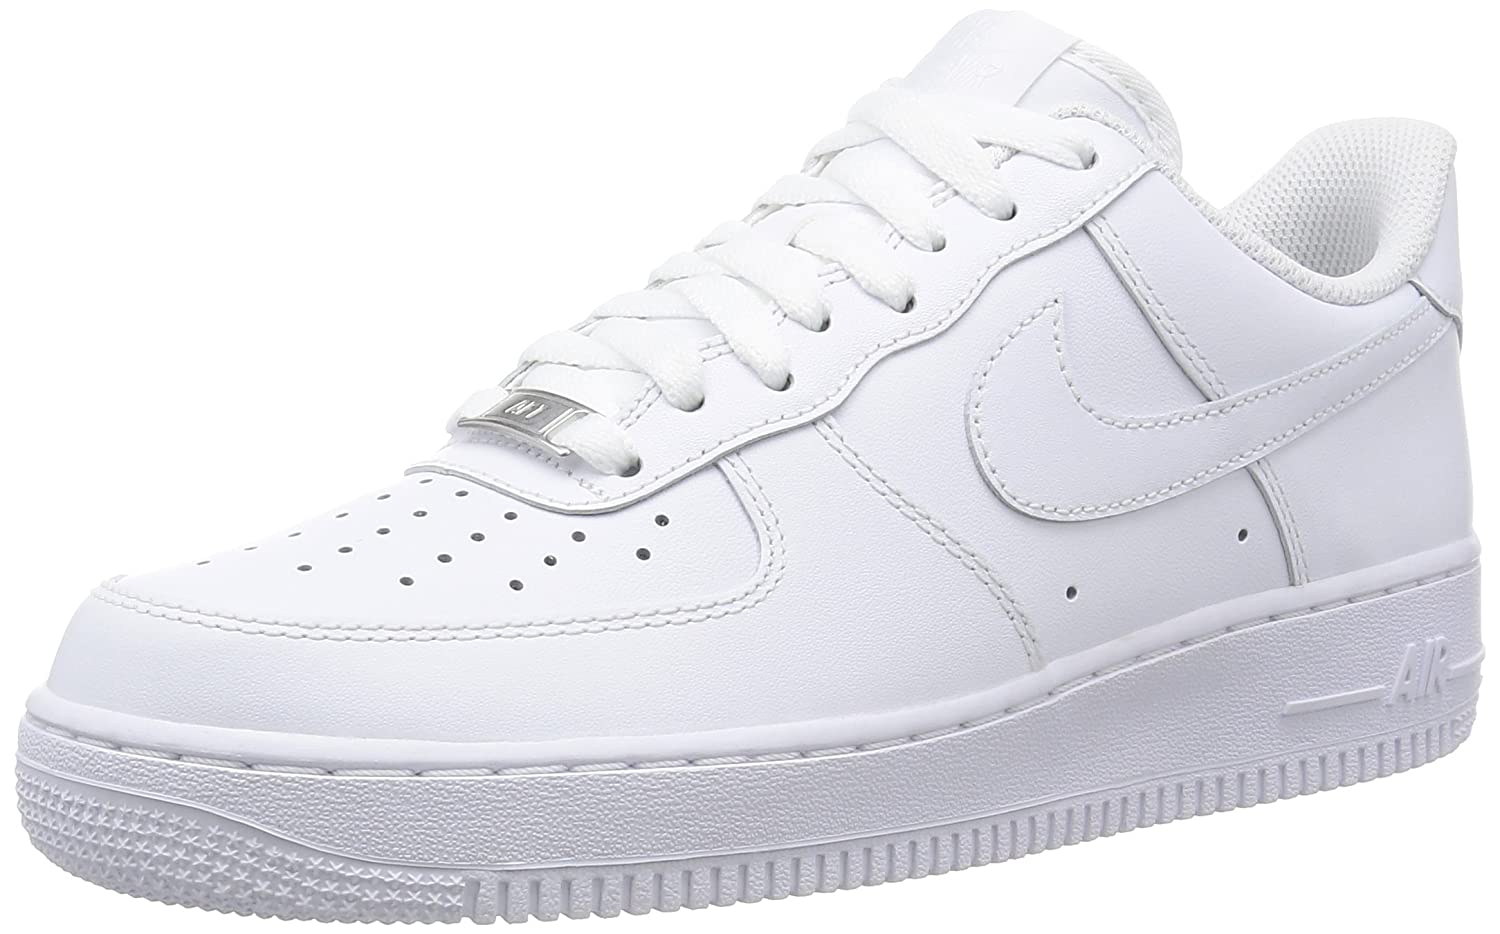 Zapatillas Nike Air Force 1 Low Us 8.5 Us 9.5 Cod 315122 111